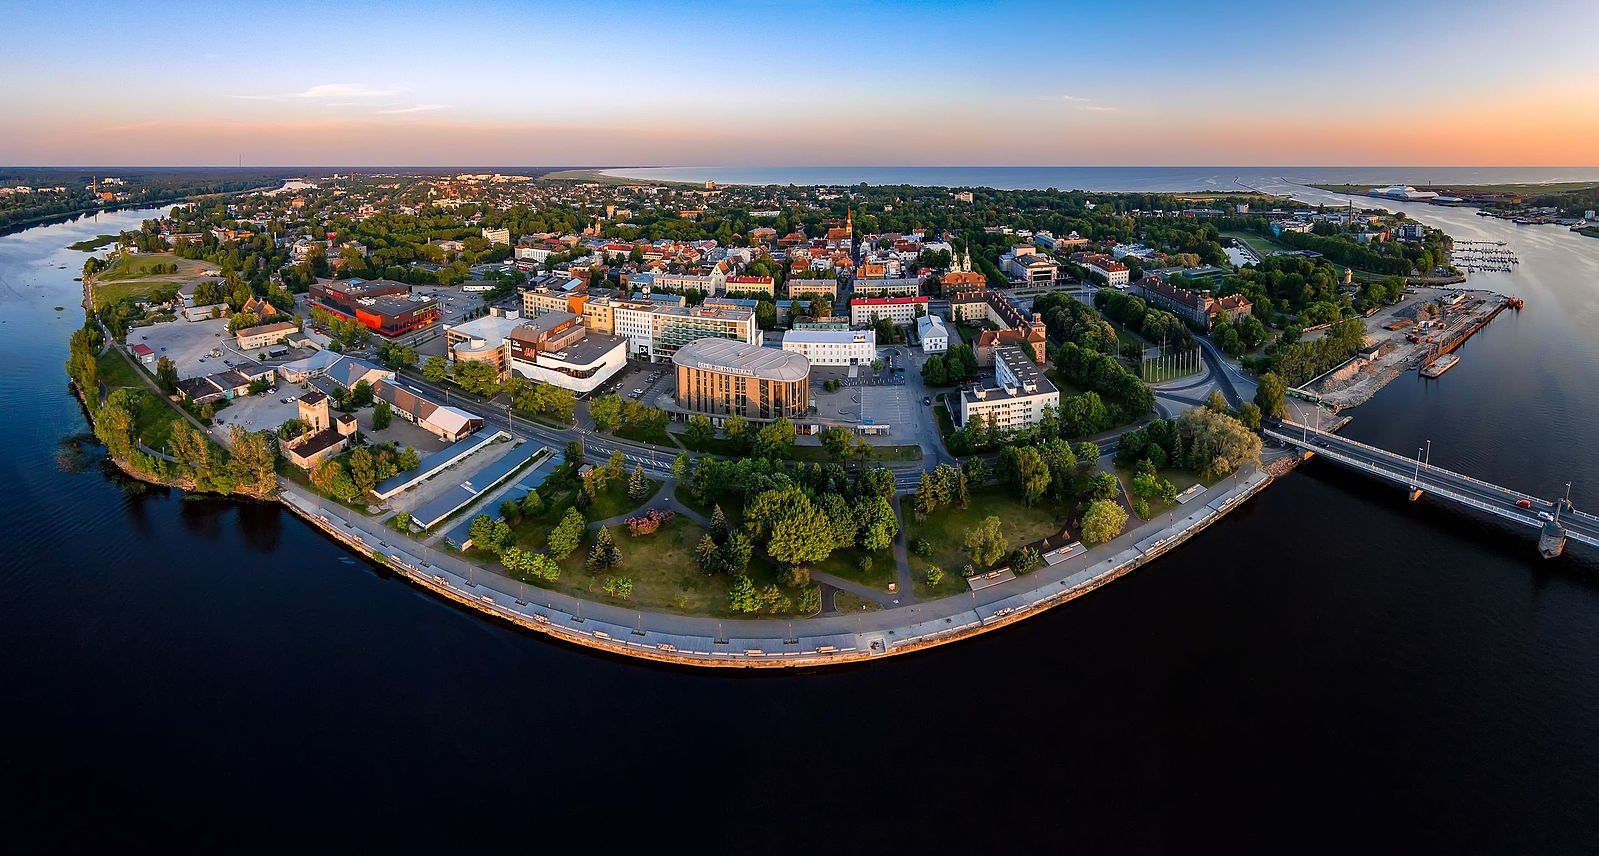 aerial view of parnu. waterfront buildings and parks, bridge connecting to mainland. sunset in estonia.